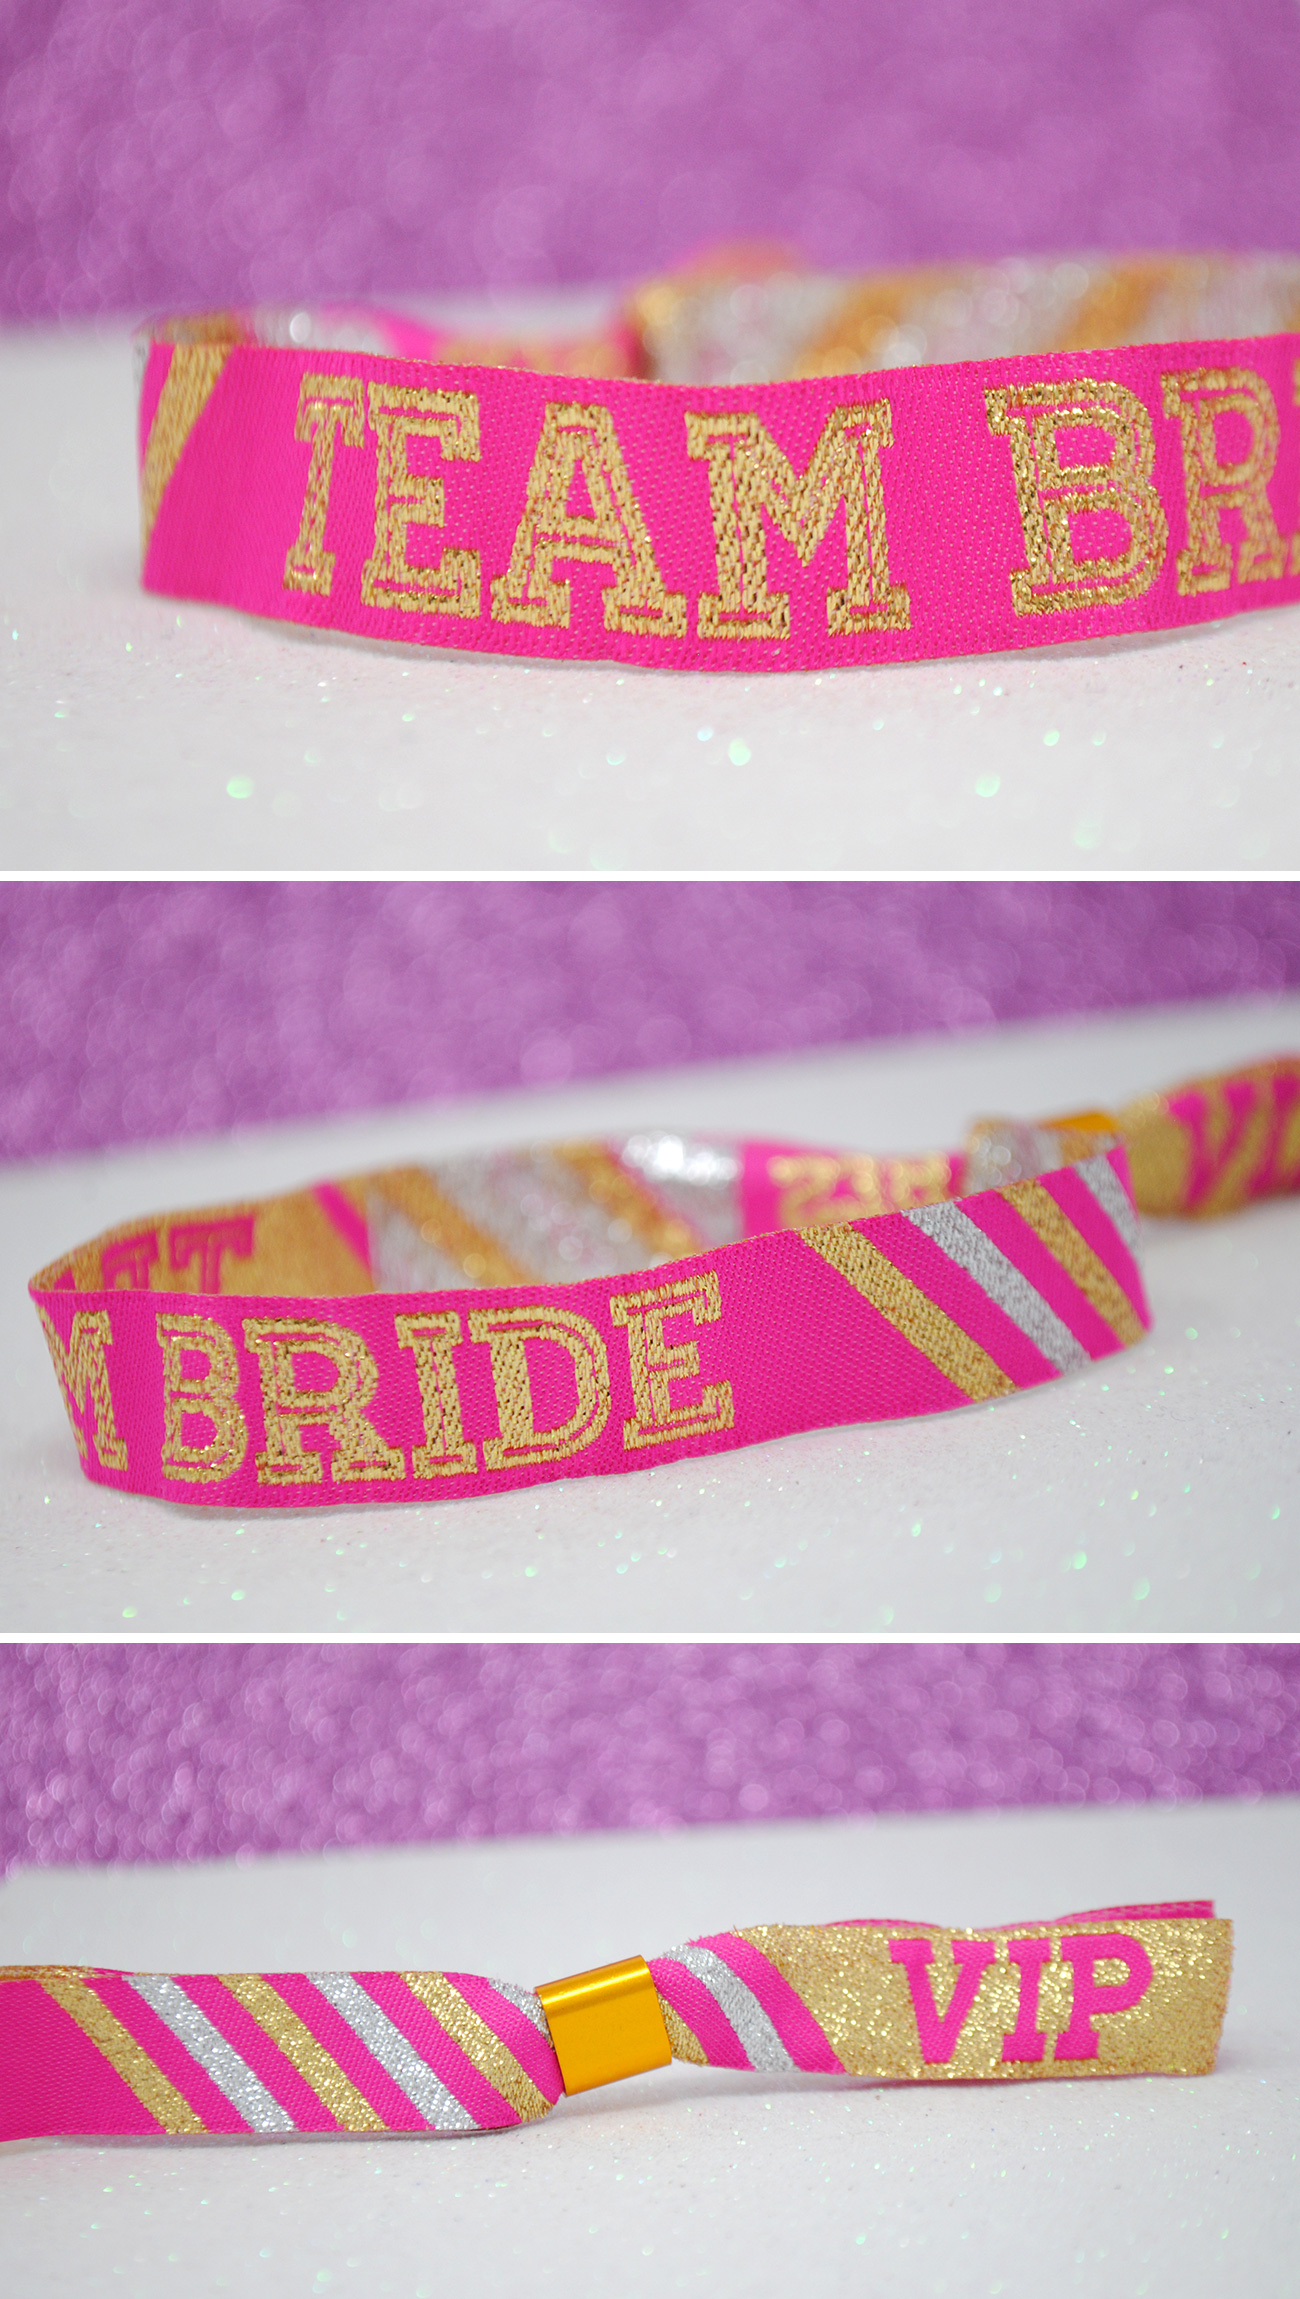 hen party cheerleader team bride wristbands accessories